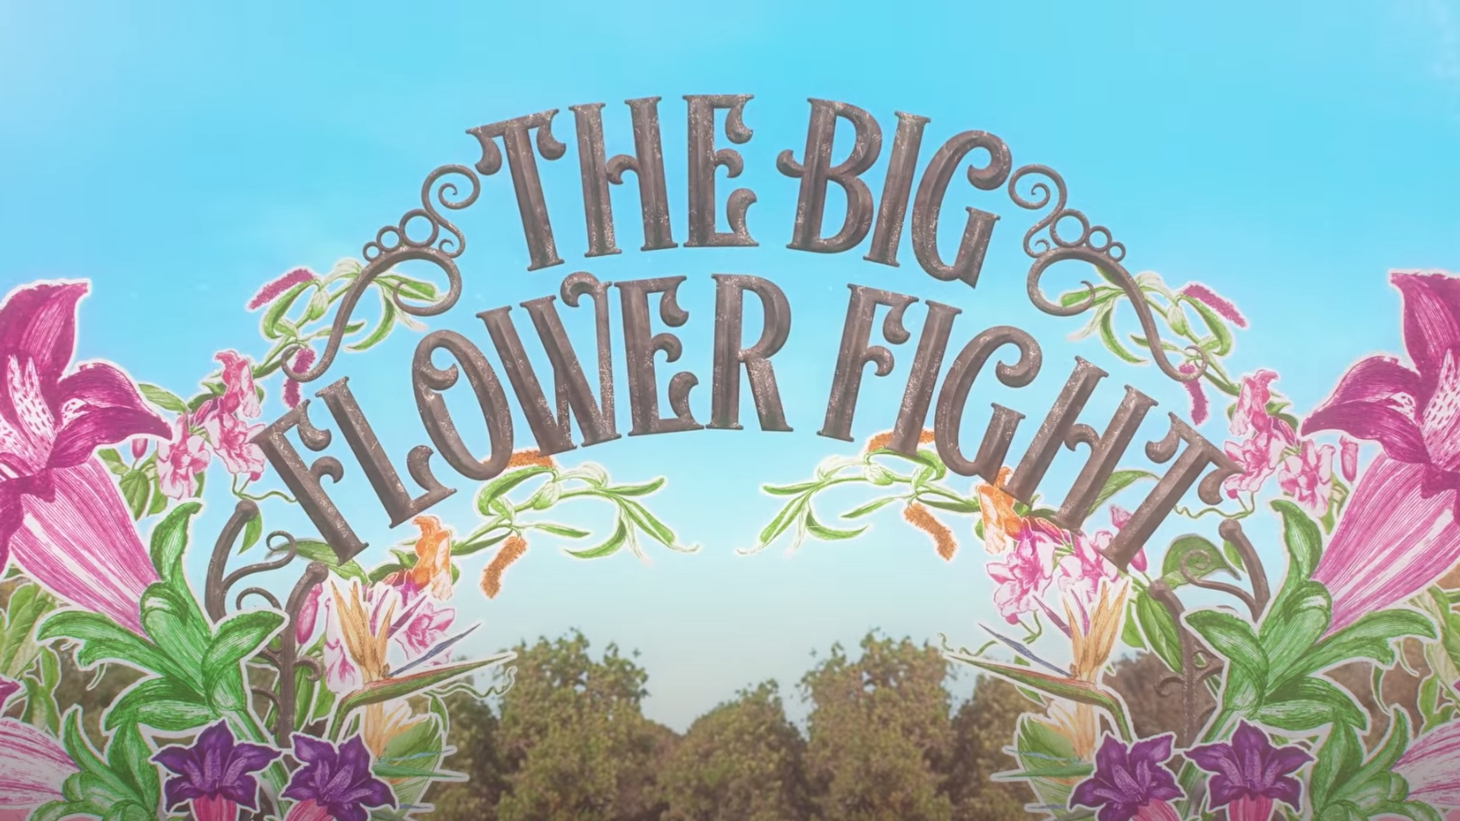 """On Netflix's """"The Big Flower Fight,"""" 10 pairs of competitors see who can construct the largest and most creative garden sculptures."""